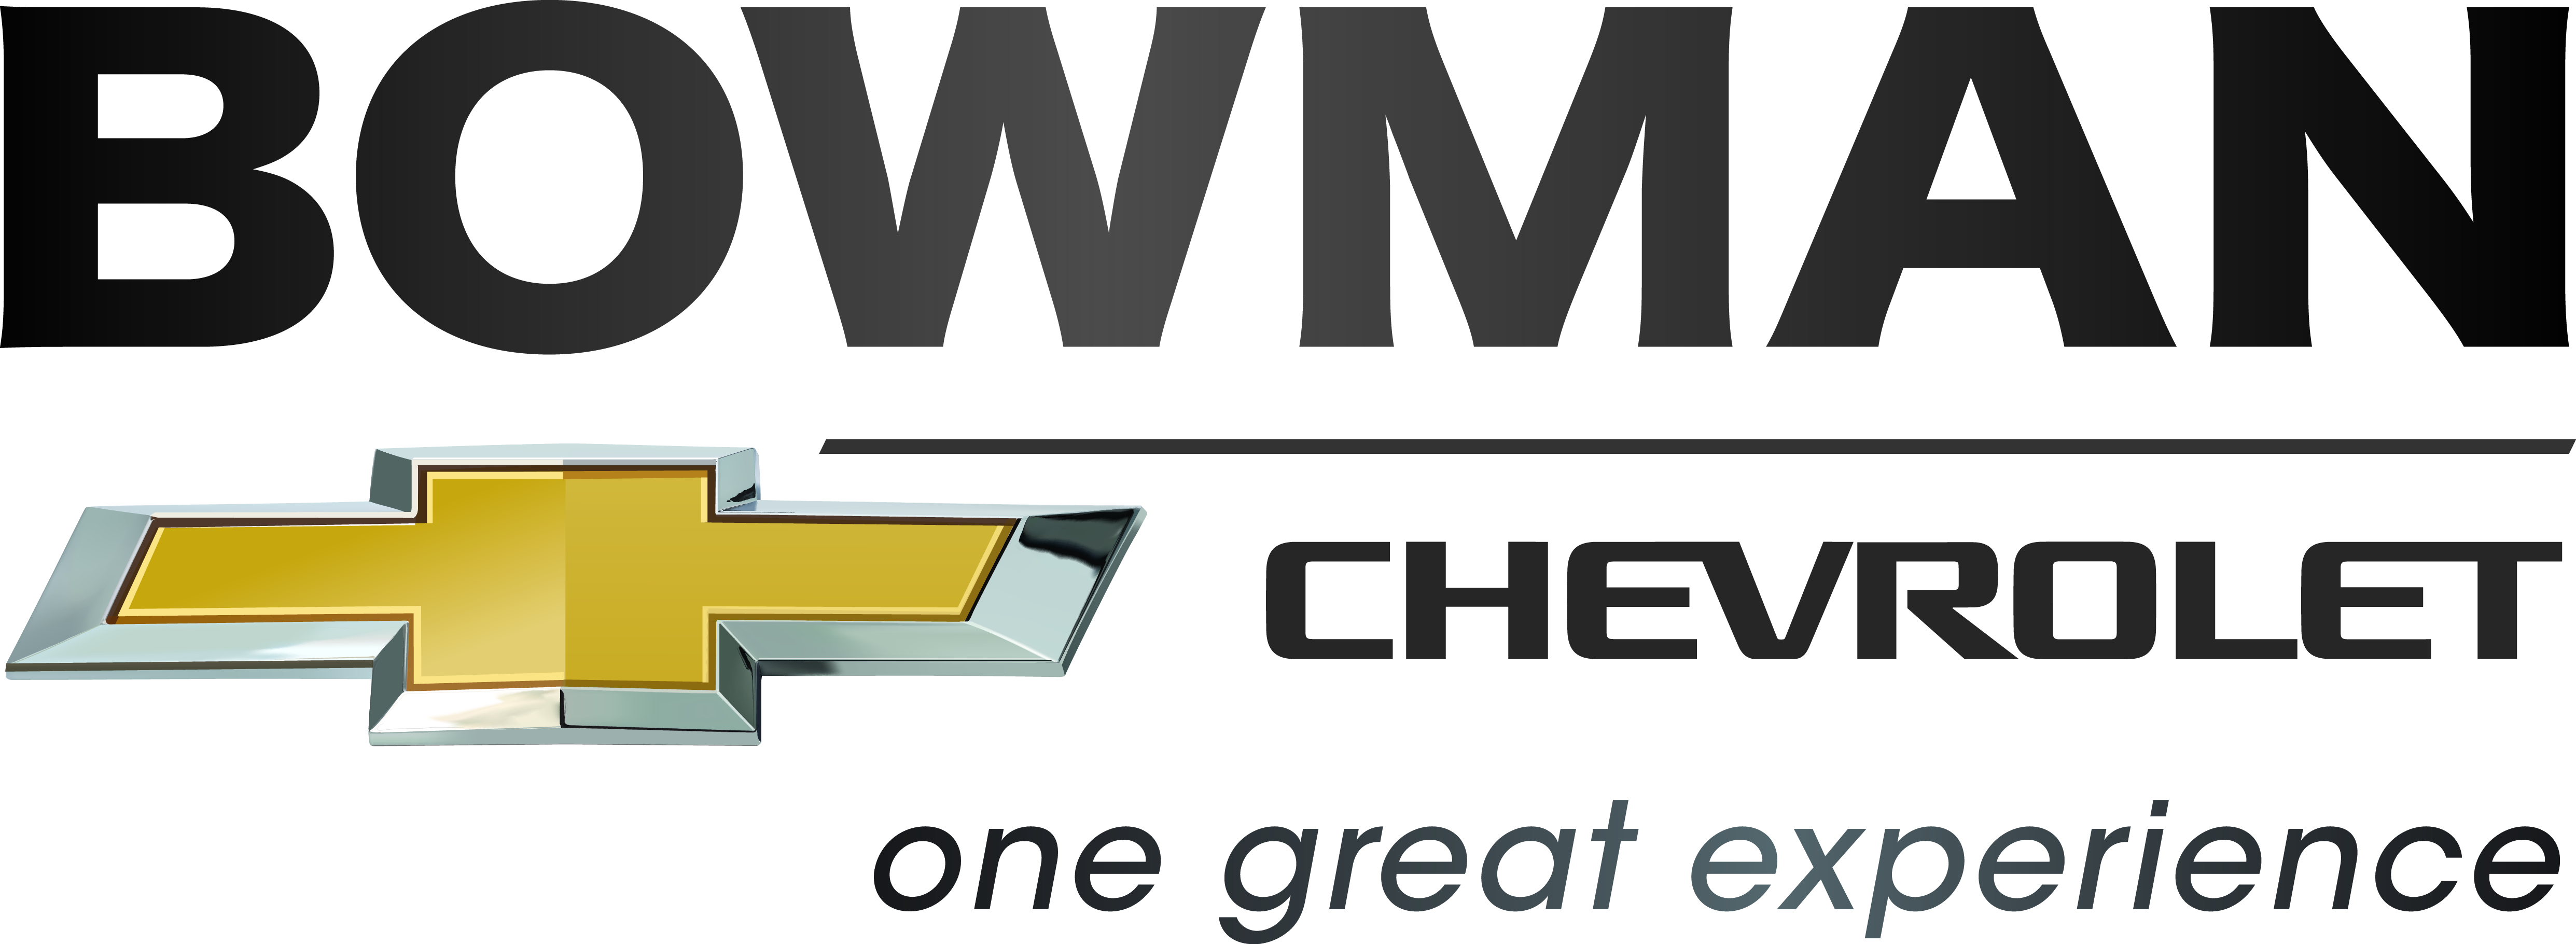 John Bowman Chevrolet, Inc.